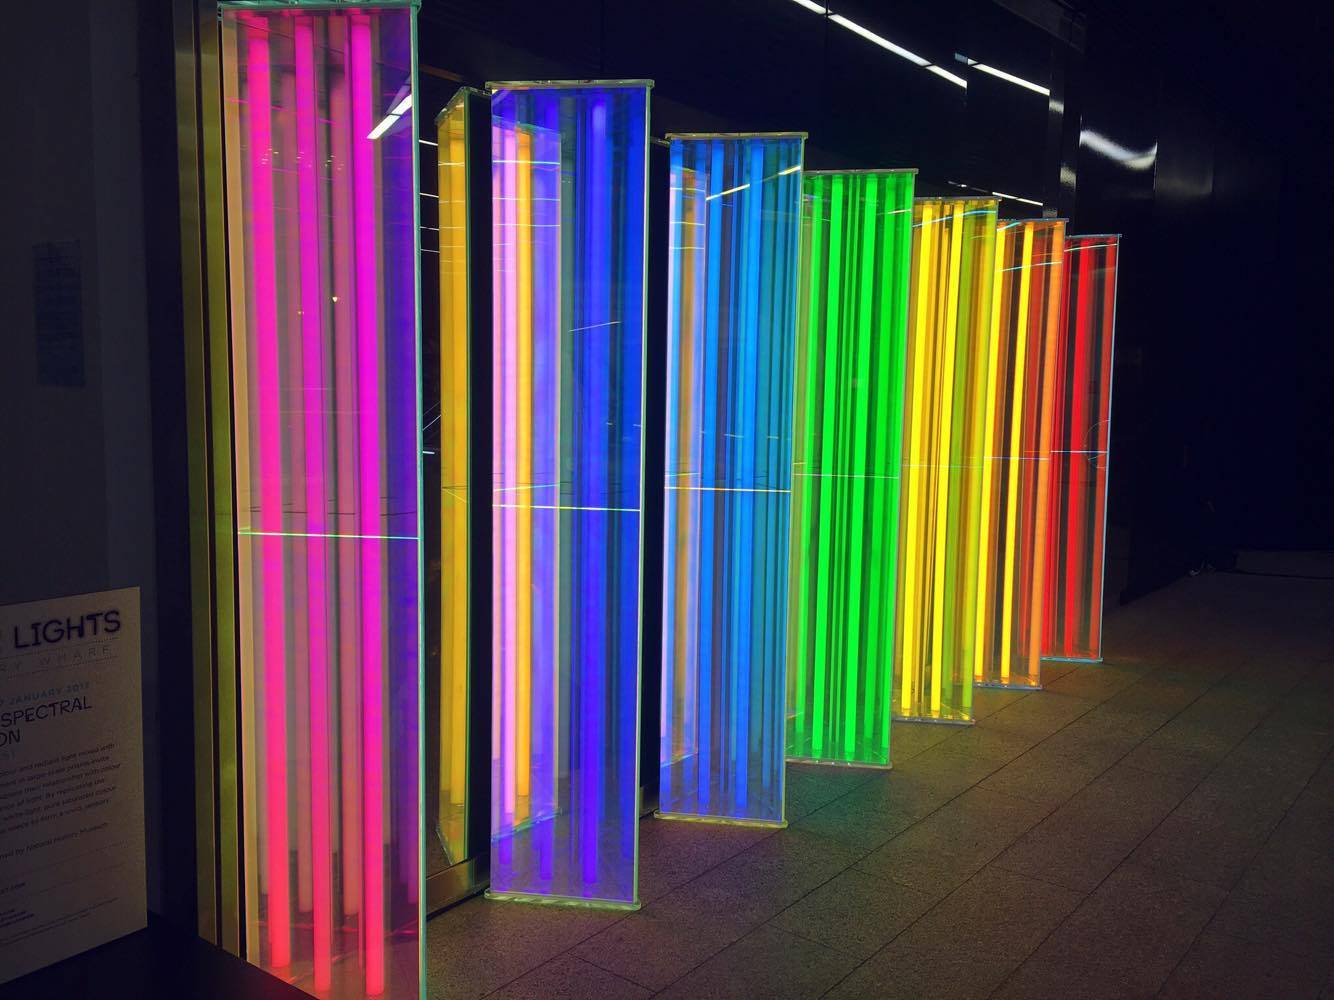 OUR SPECTRAL VISION, LIZ WEST, CROSSRAIL PLACE GROUND LEVEL @ Winter Lights, Canary Wharf